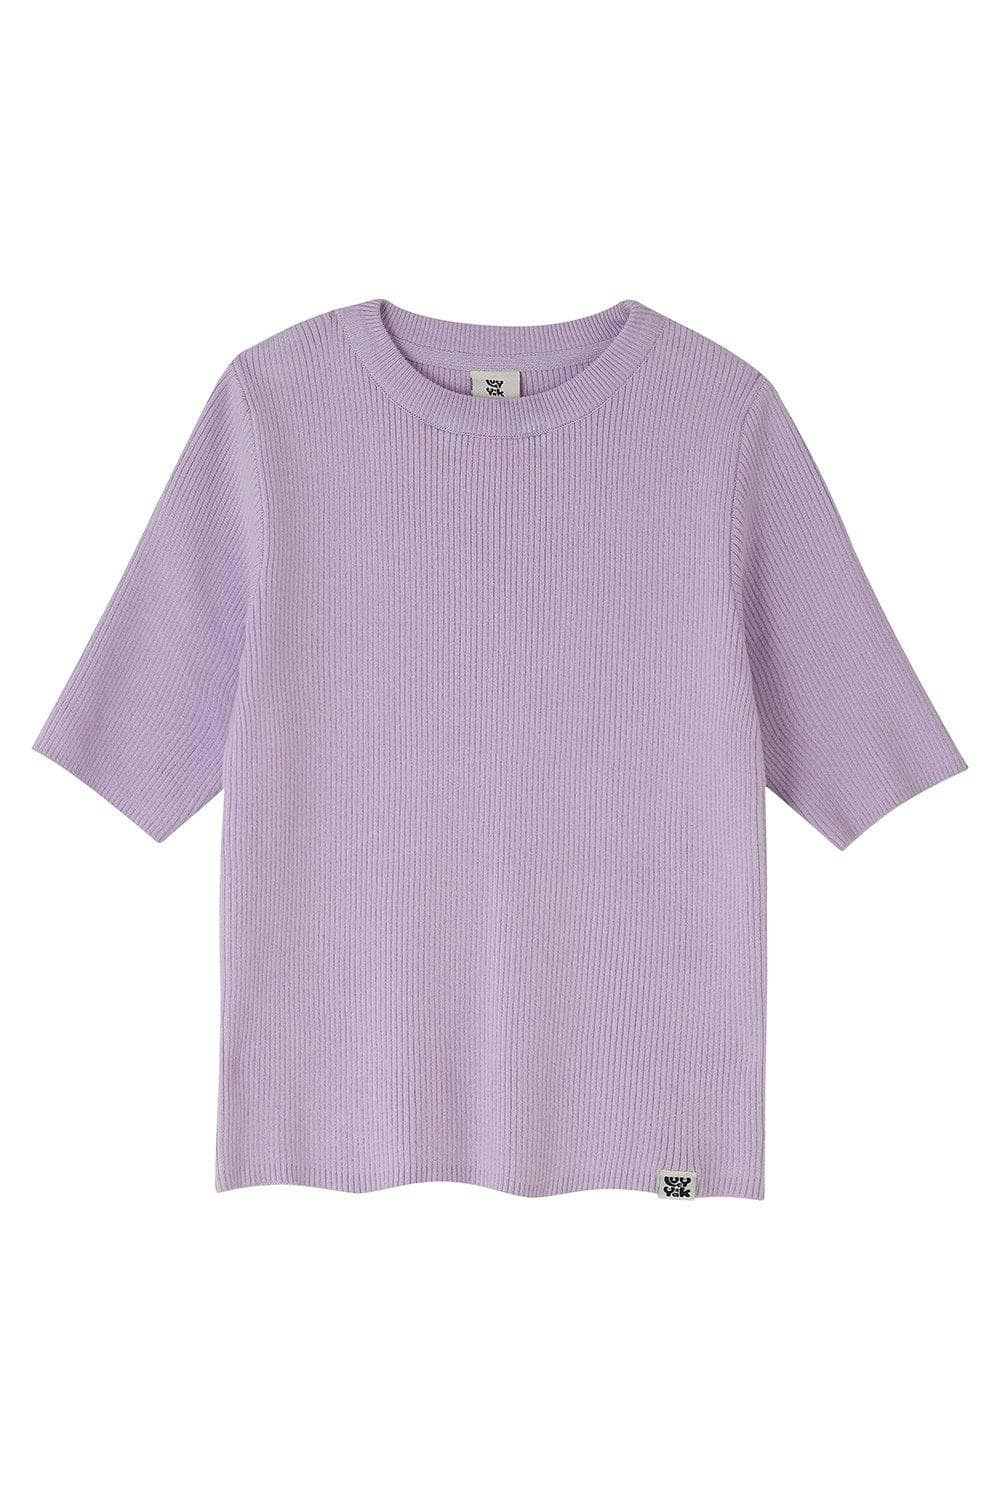 Lucy & Yak Tops Miranda Organic Cotton Top In Orchid Bloom